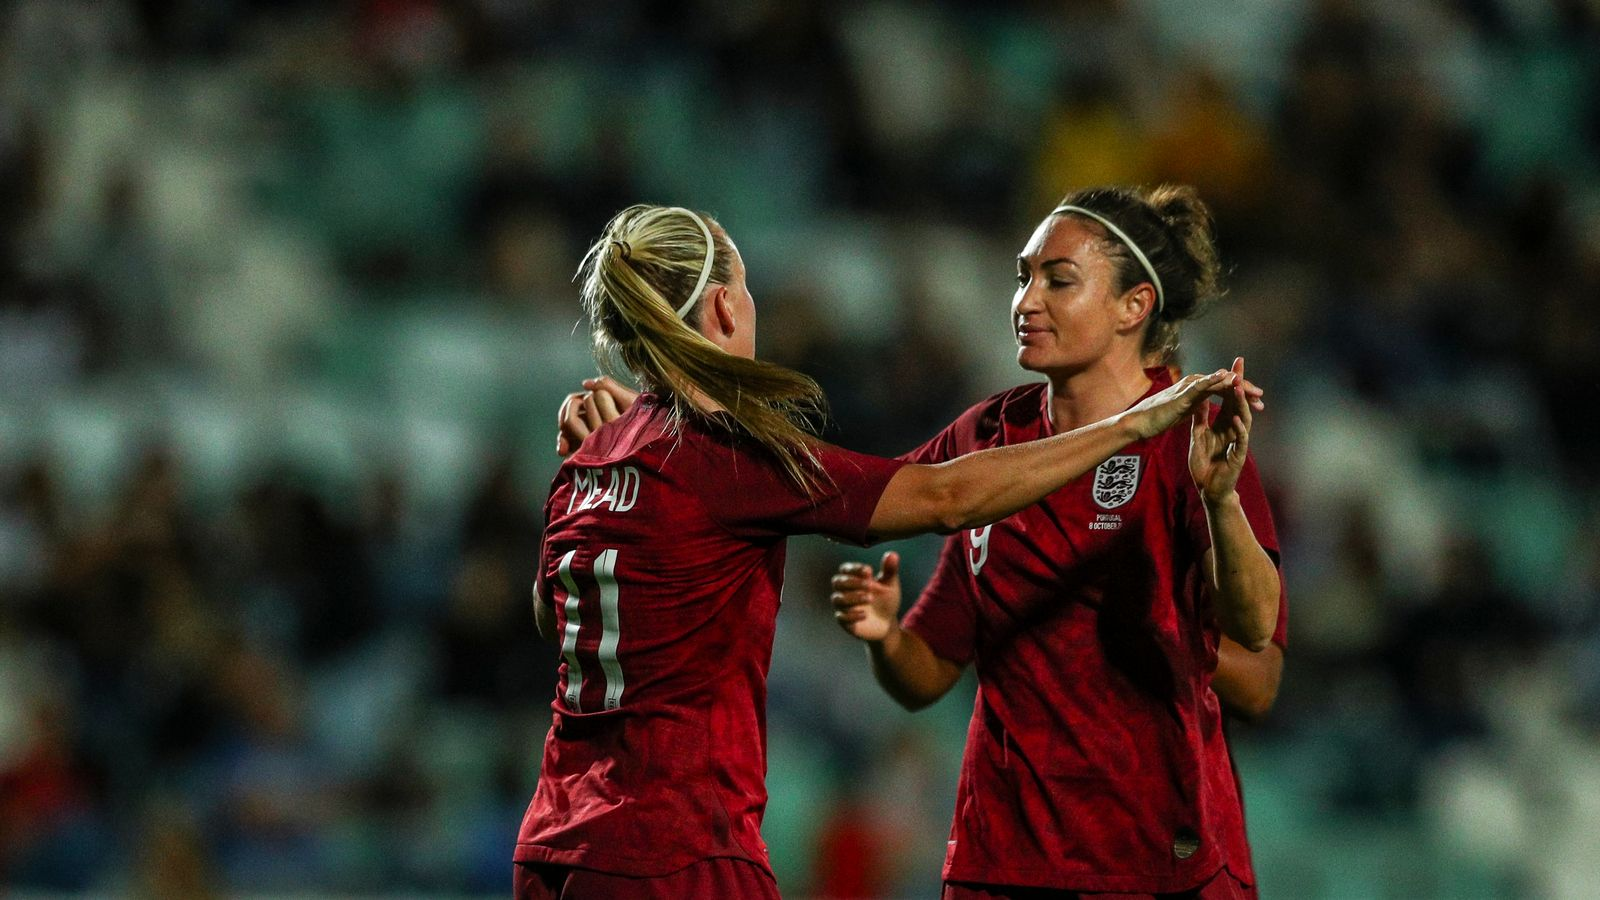 Portugal Women 0-1 England Women: Beth Mead hands Lionesses much-needed win